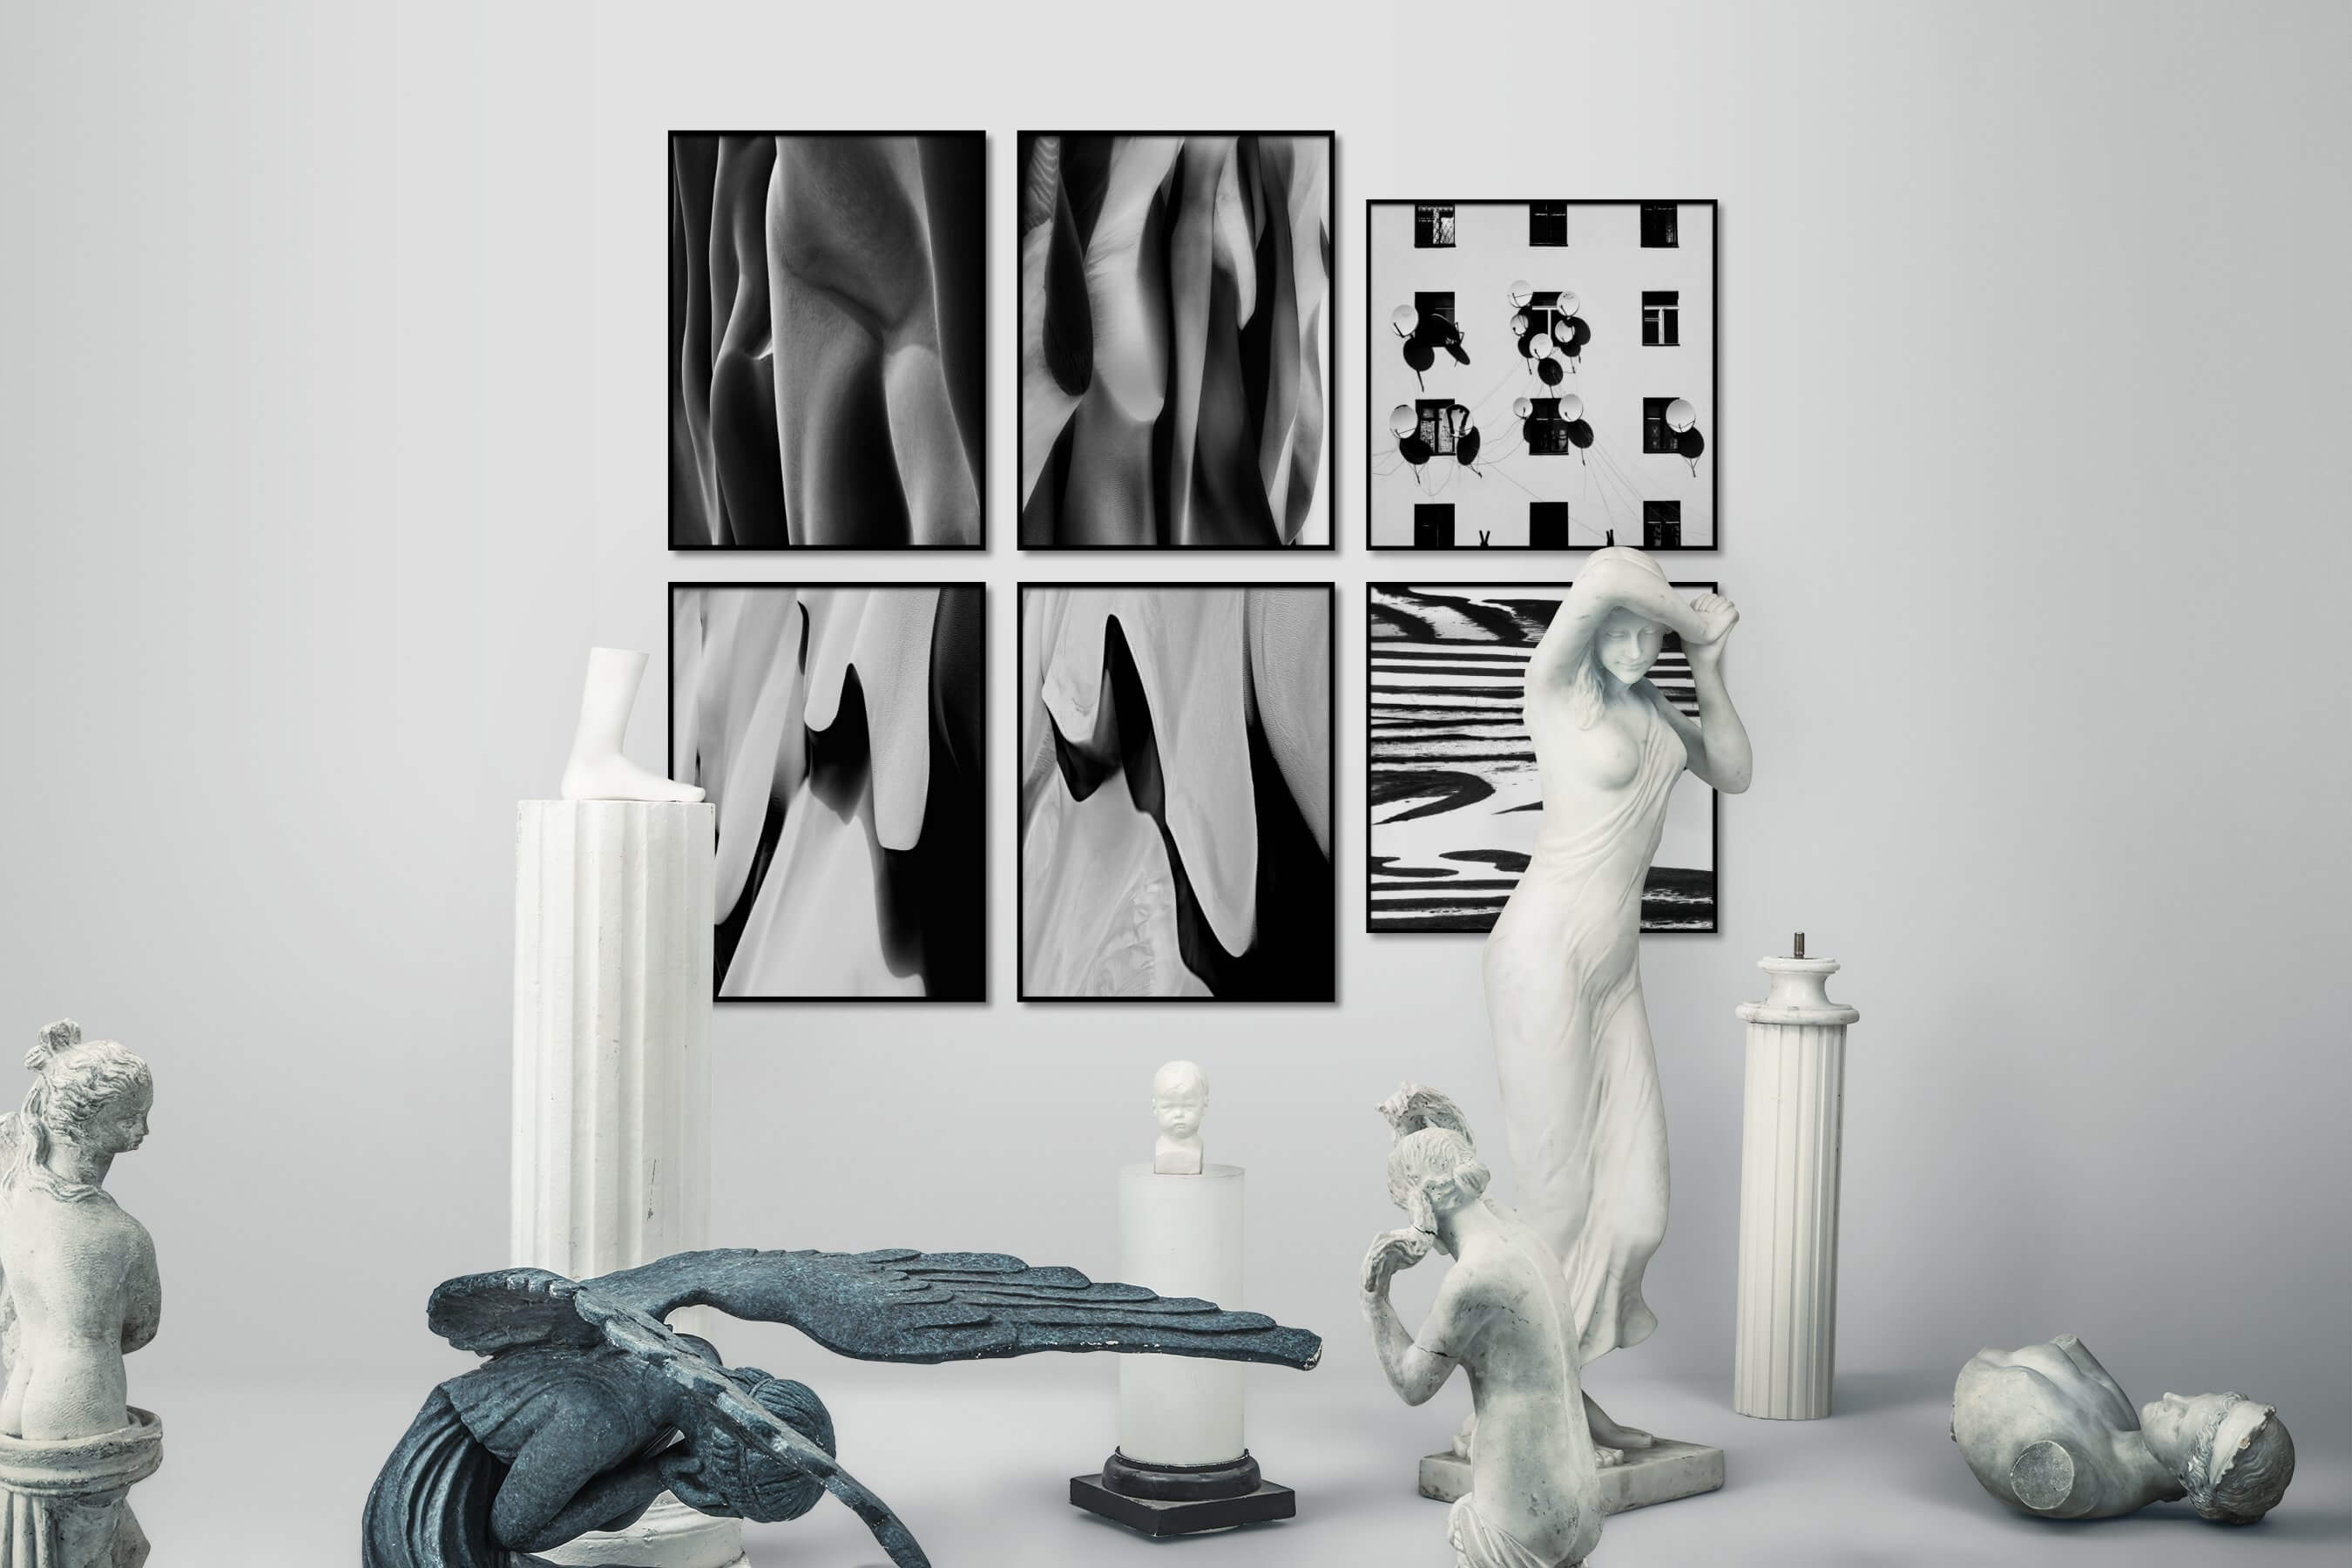 Gallery wall idea with six framed pictures arranged on a wall depicting Black & White, For the Moderate, Nature, For the Maximalist, and City Life